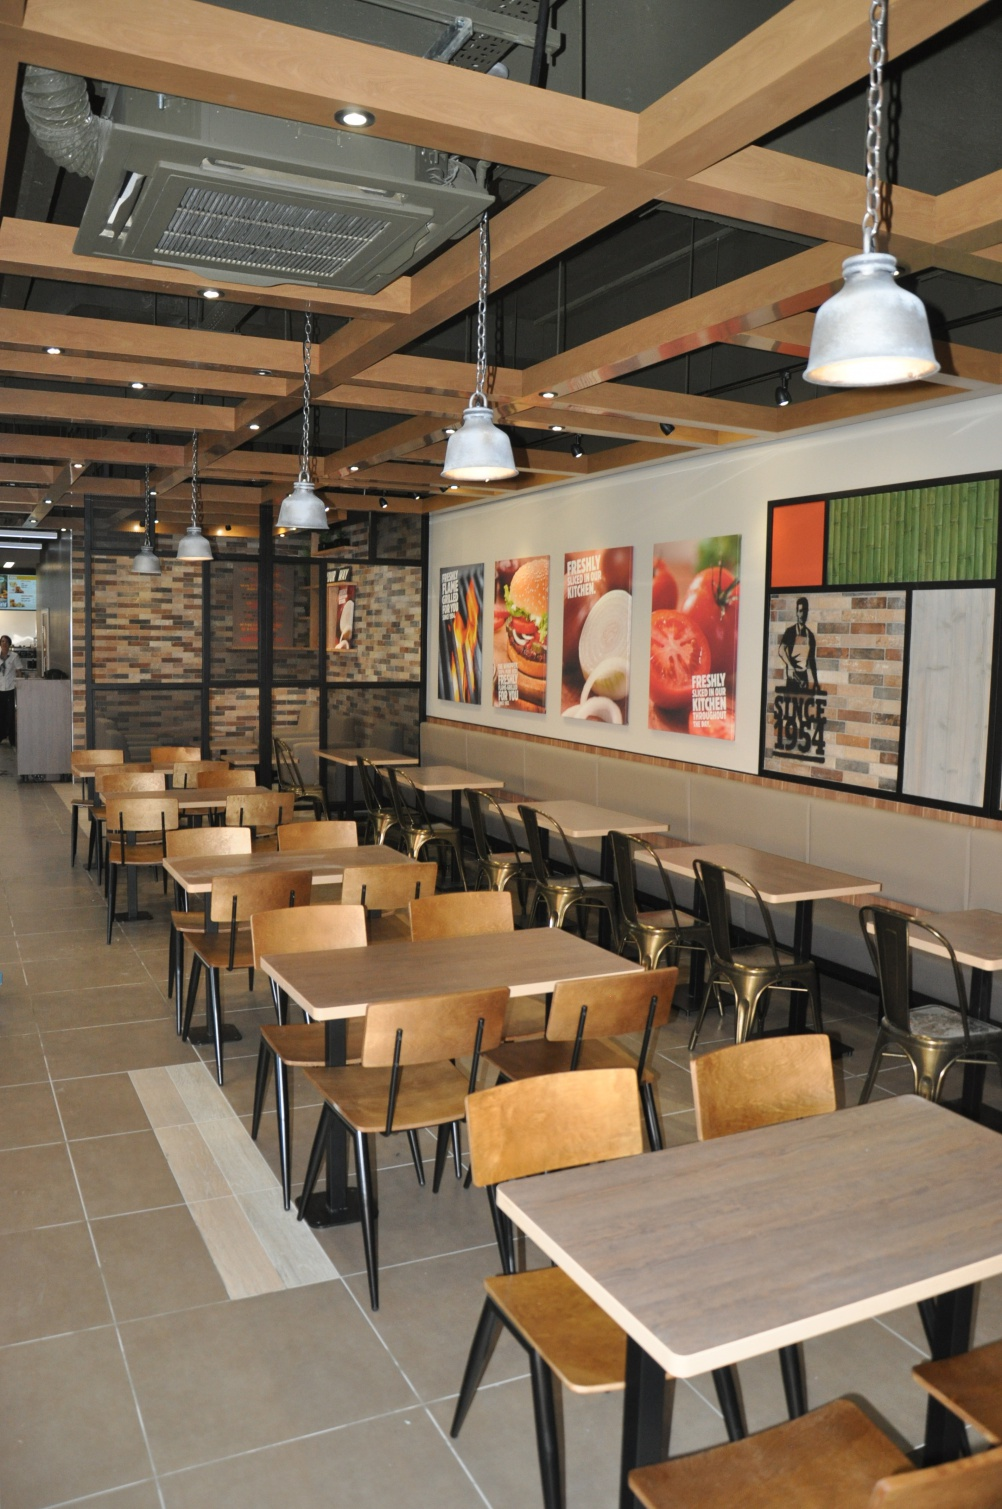 Burger king launches new interior designs design week for Interior design house grill